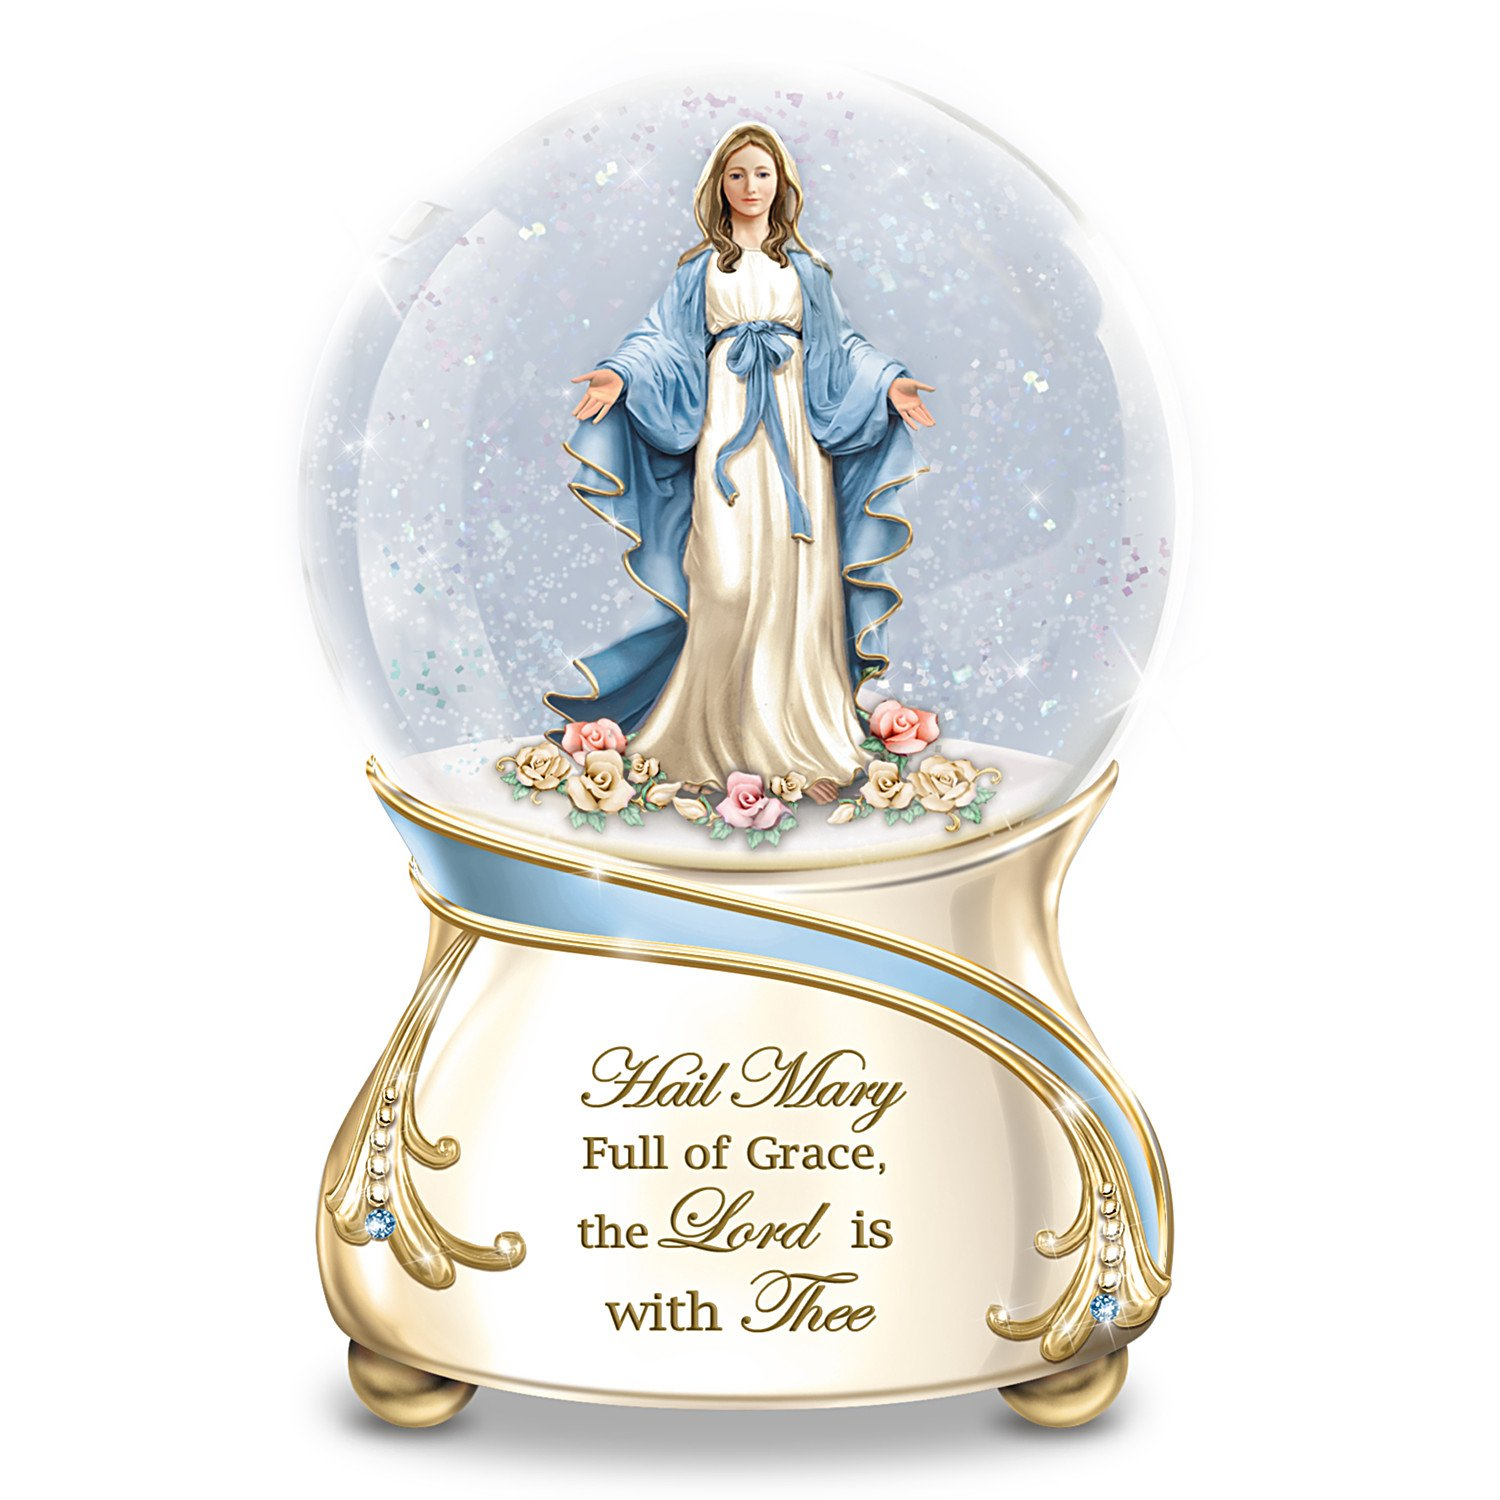 The Bradford Exchange Blessed Virgin Mary Musical Glitter Globe with 22K Gold Accents Plays Ave Maria